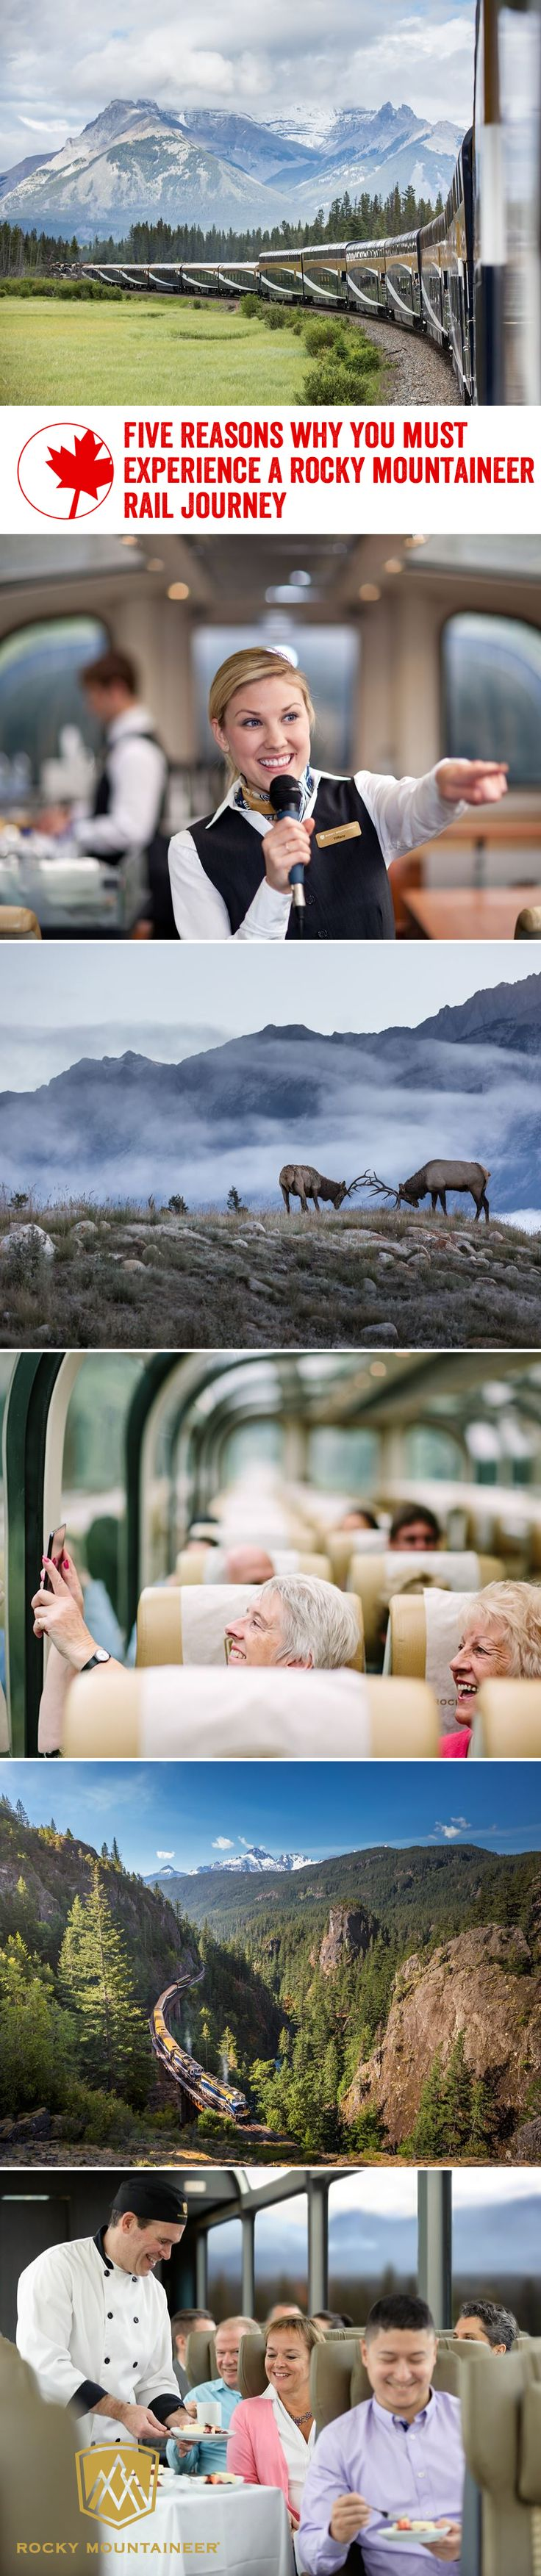 Spectacular views of Western Canada's natural beauty, gourmet cuisine, exceedingly friendly train hosts…there are so many reasons you'll love a journey on the Rocky Mountaineer.